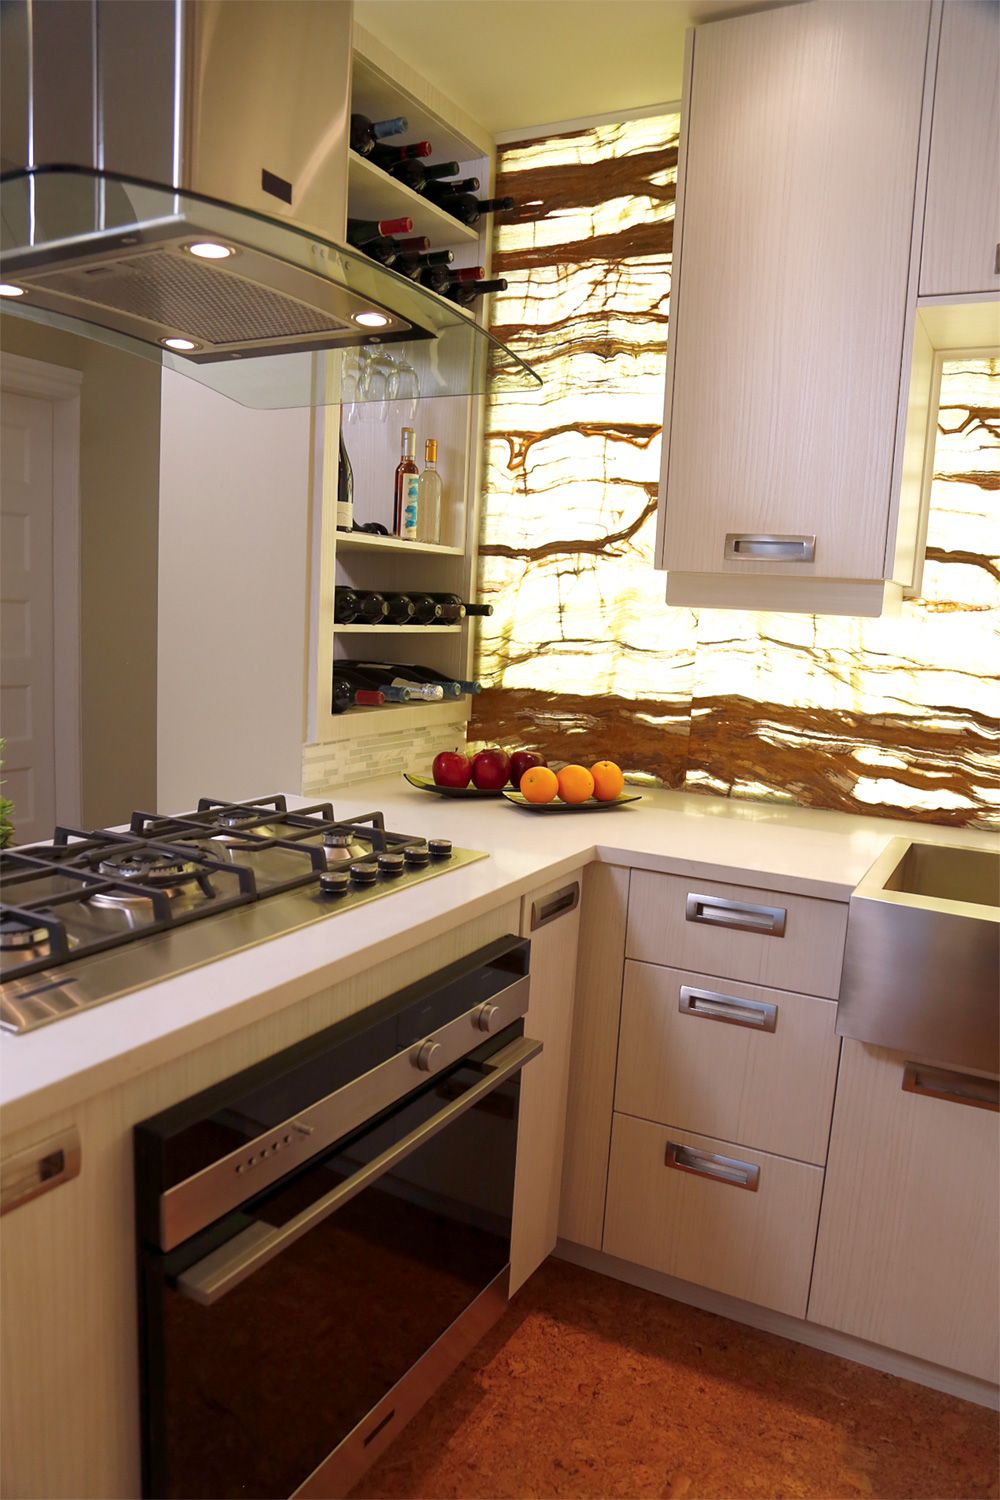 We created a regal kitchen space with plenty of